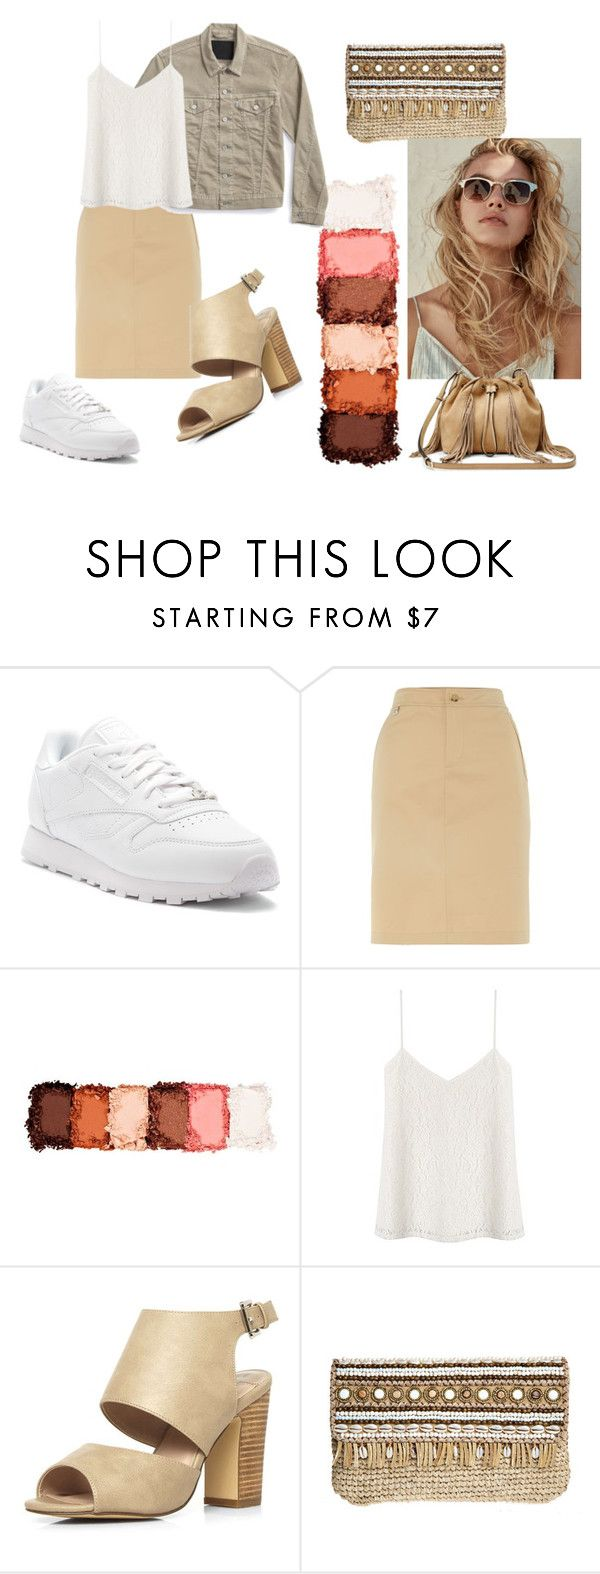 """6446"" by alena-mendesh on Polyvore featuring мода, Reebok, Lauren Ralph Lauren, NYX, Dorothy Perkins, Skemo и Diane Von Furstenberg"